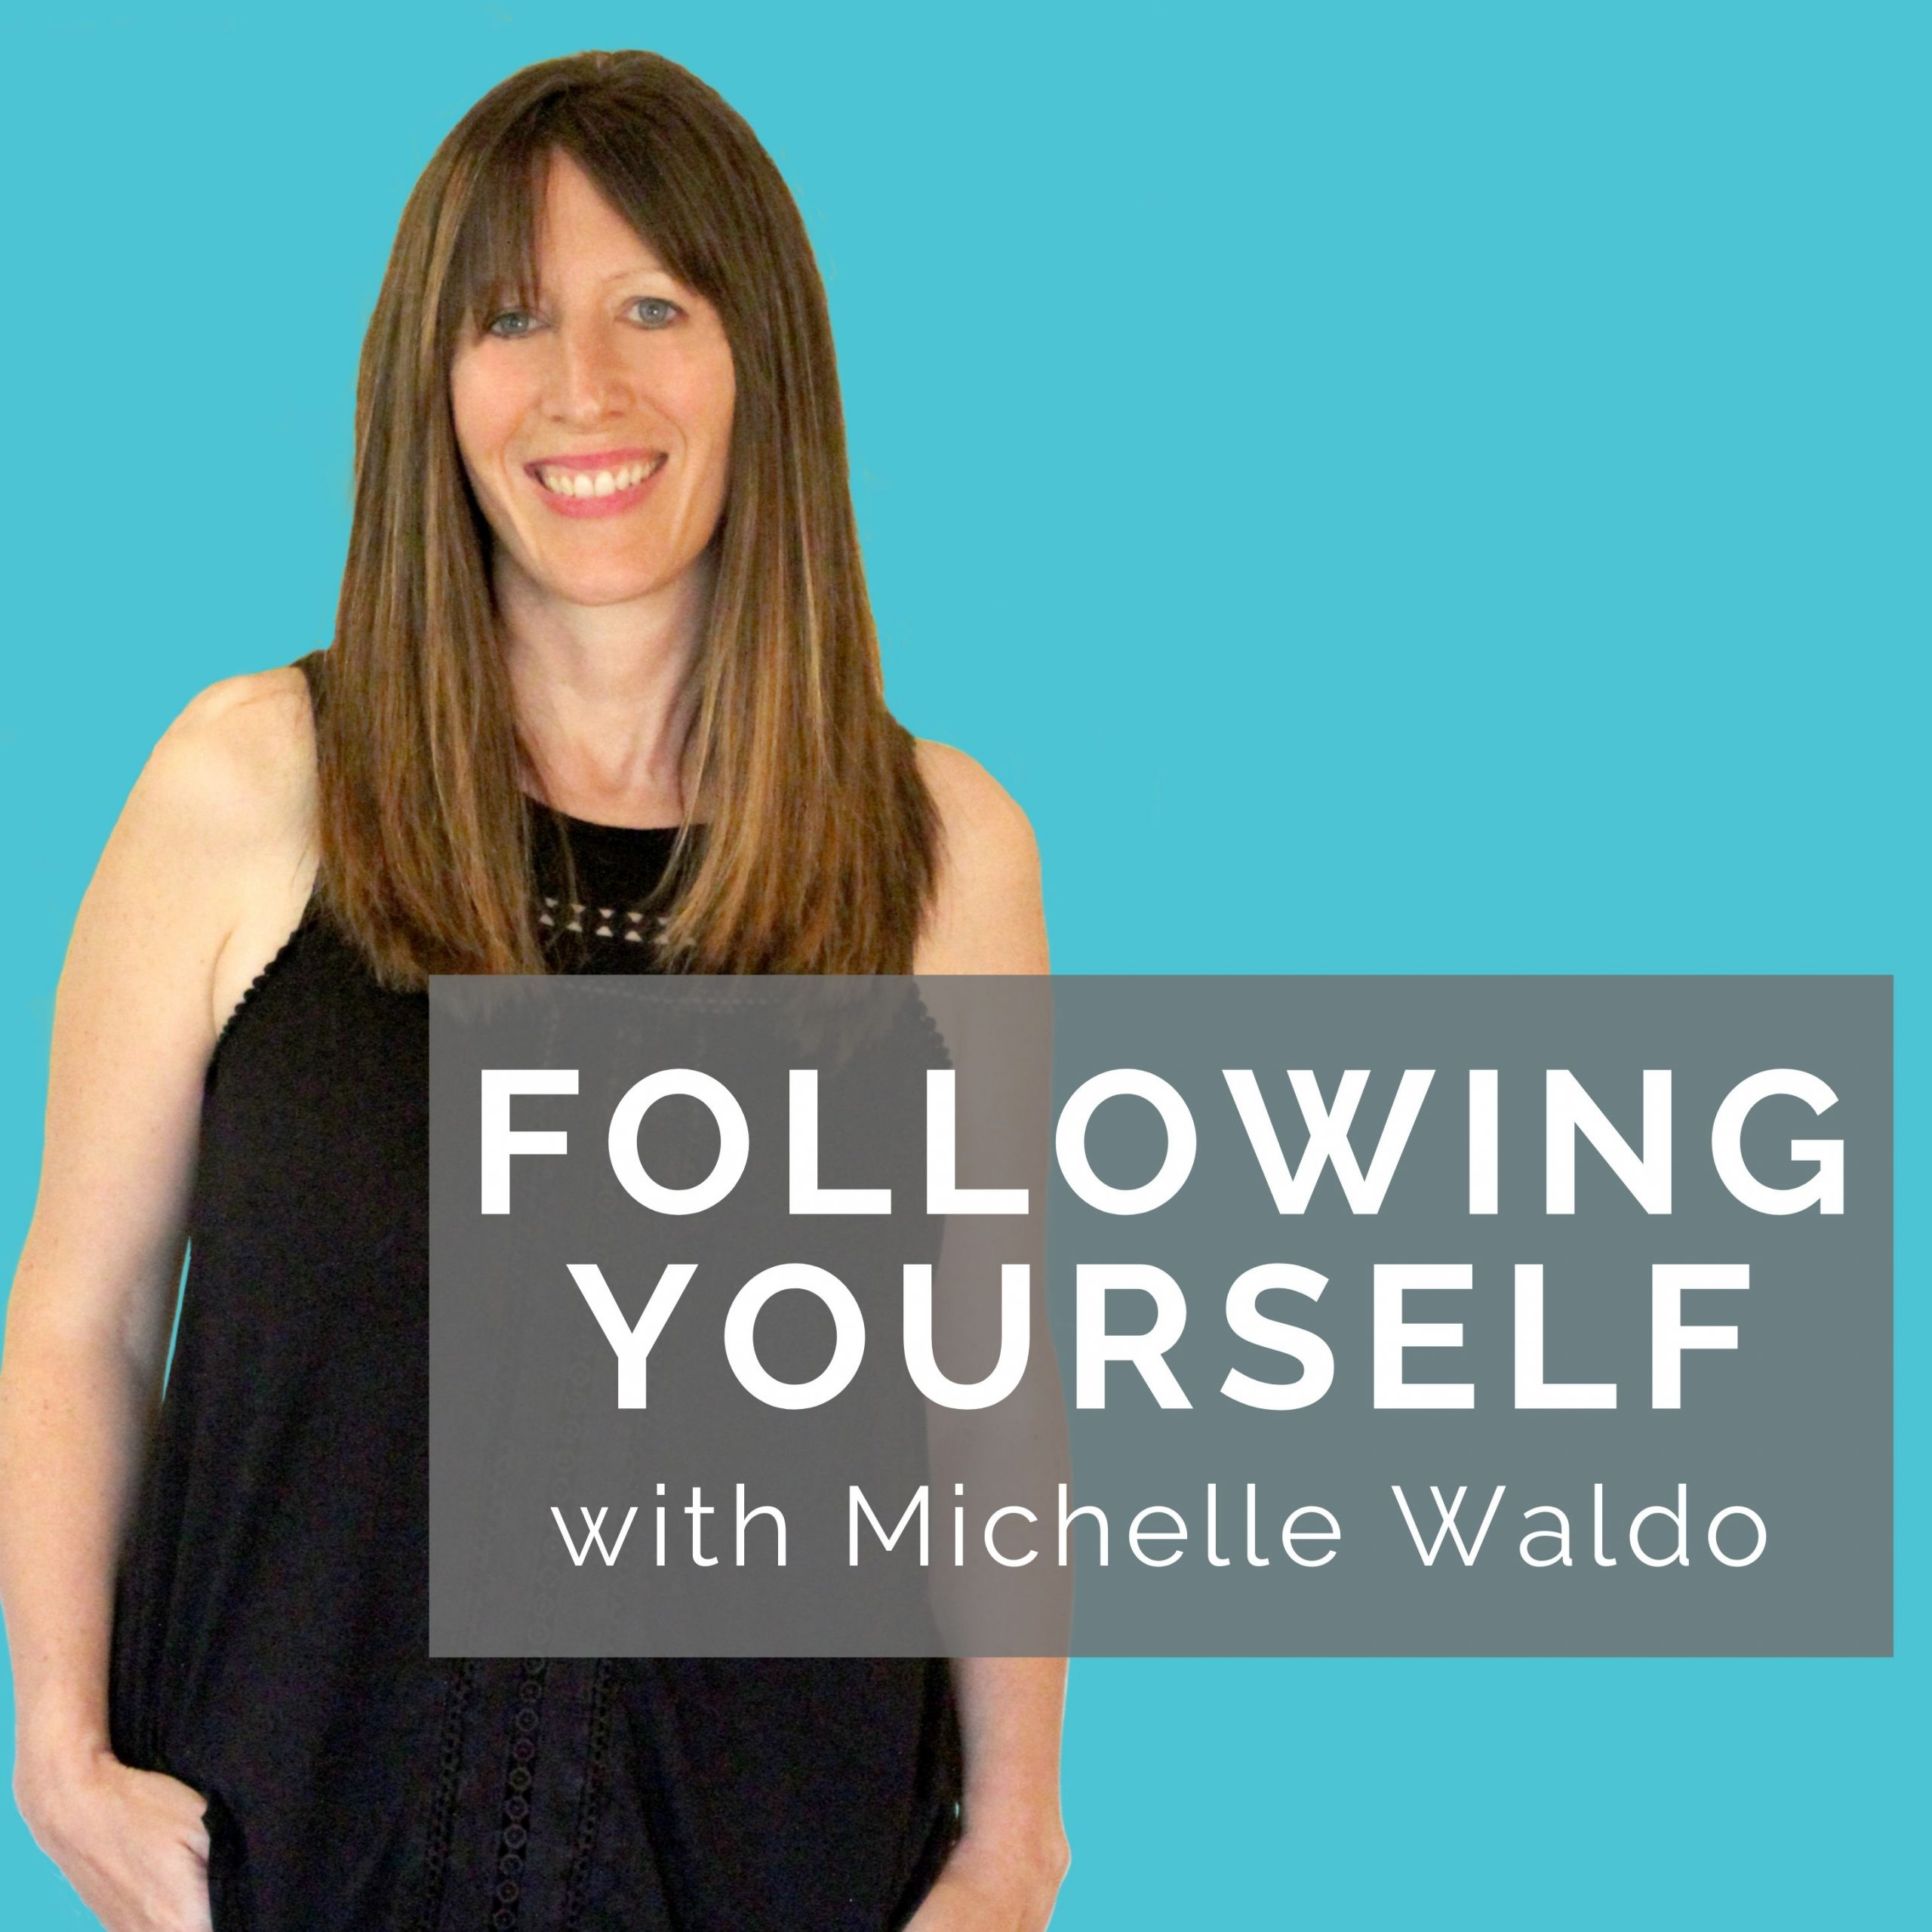 Following Yourself With Michelle Waldo Podcast Image